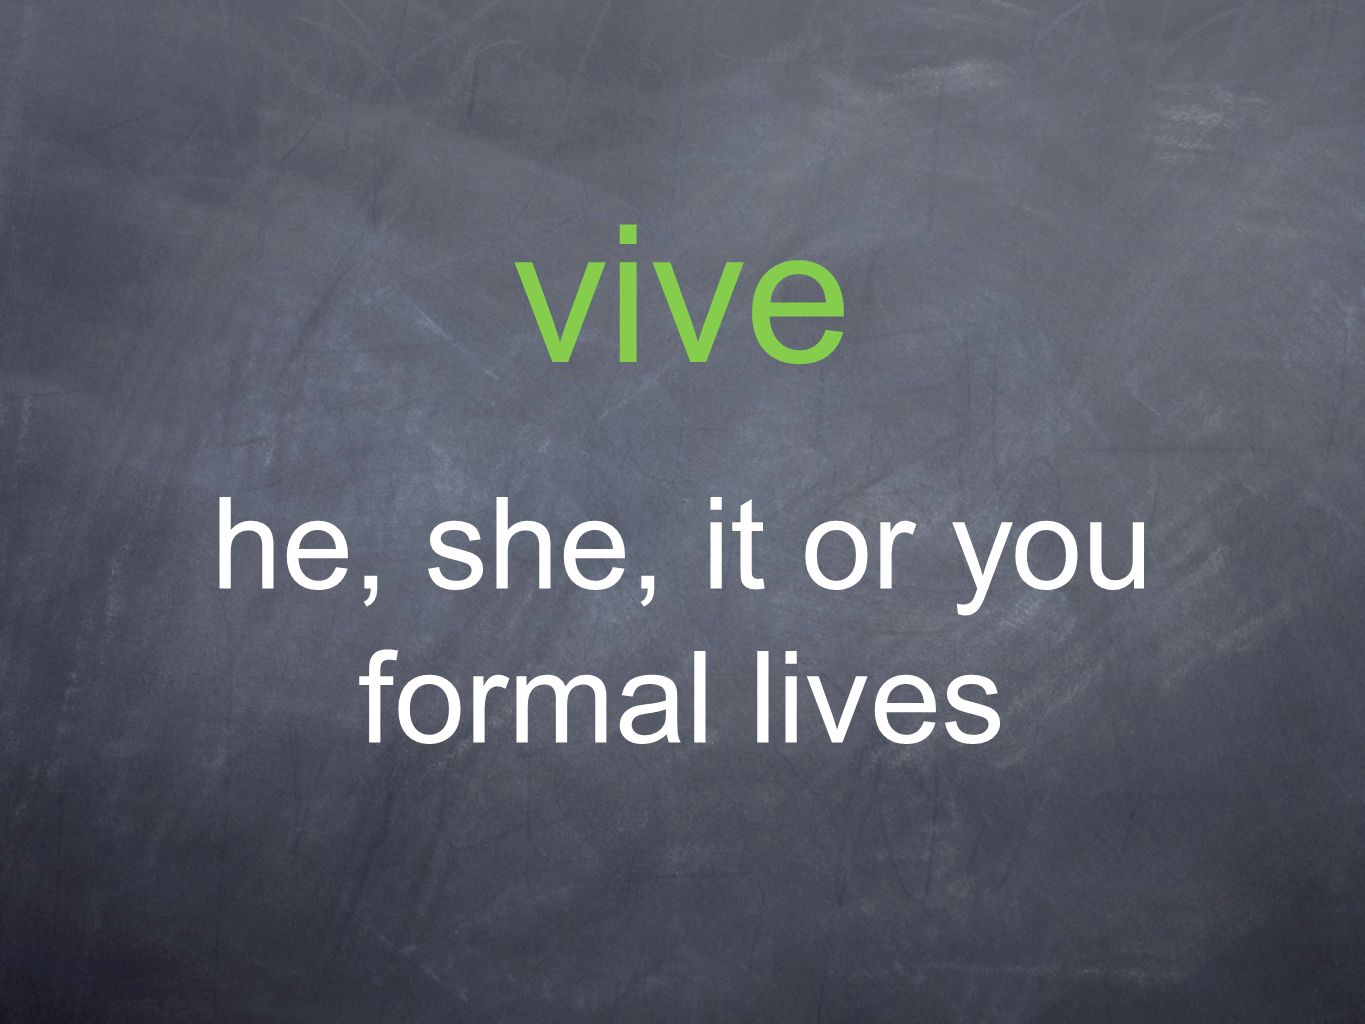 vive he, she, it or you formal lives